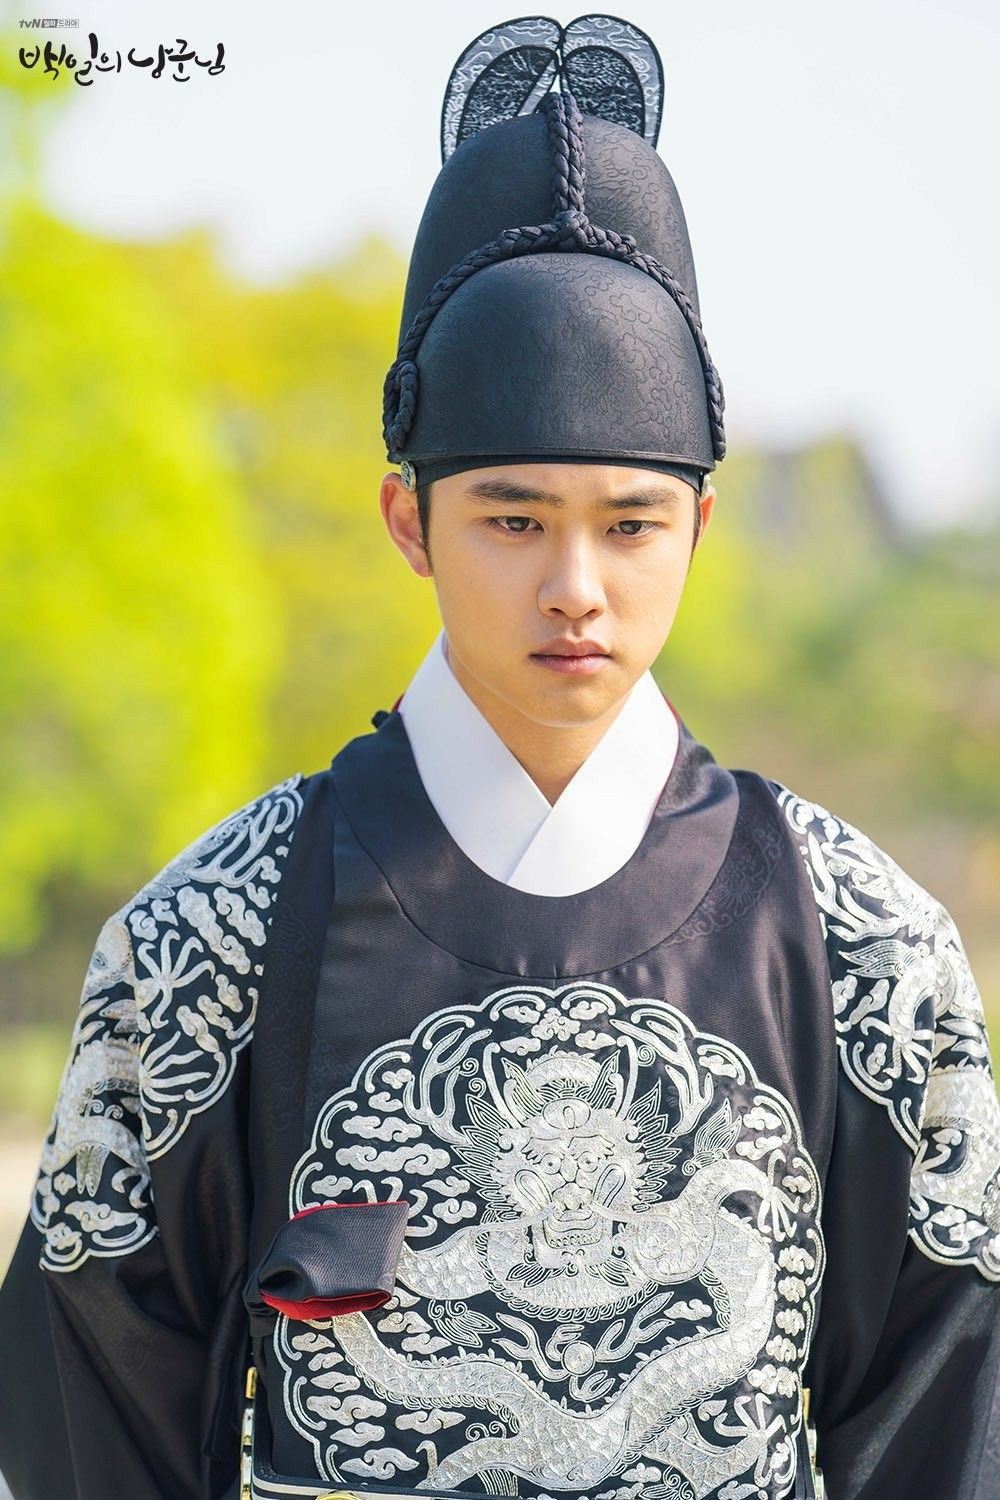 180915 Tvn Drama On Fb Do 100 Days My Prince Still Photo